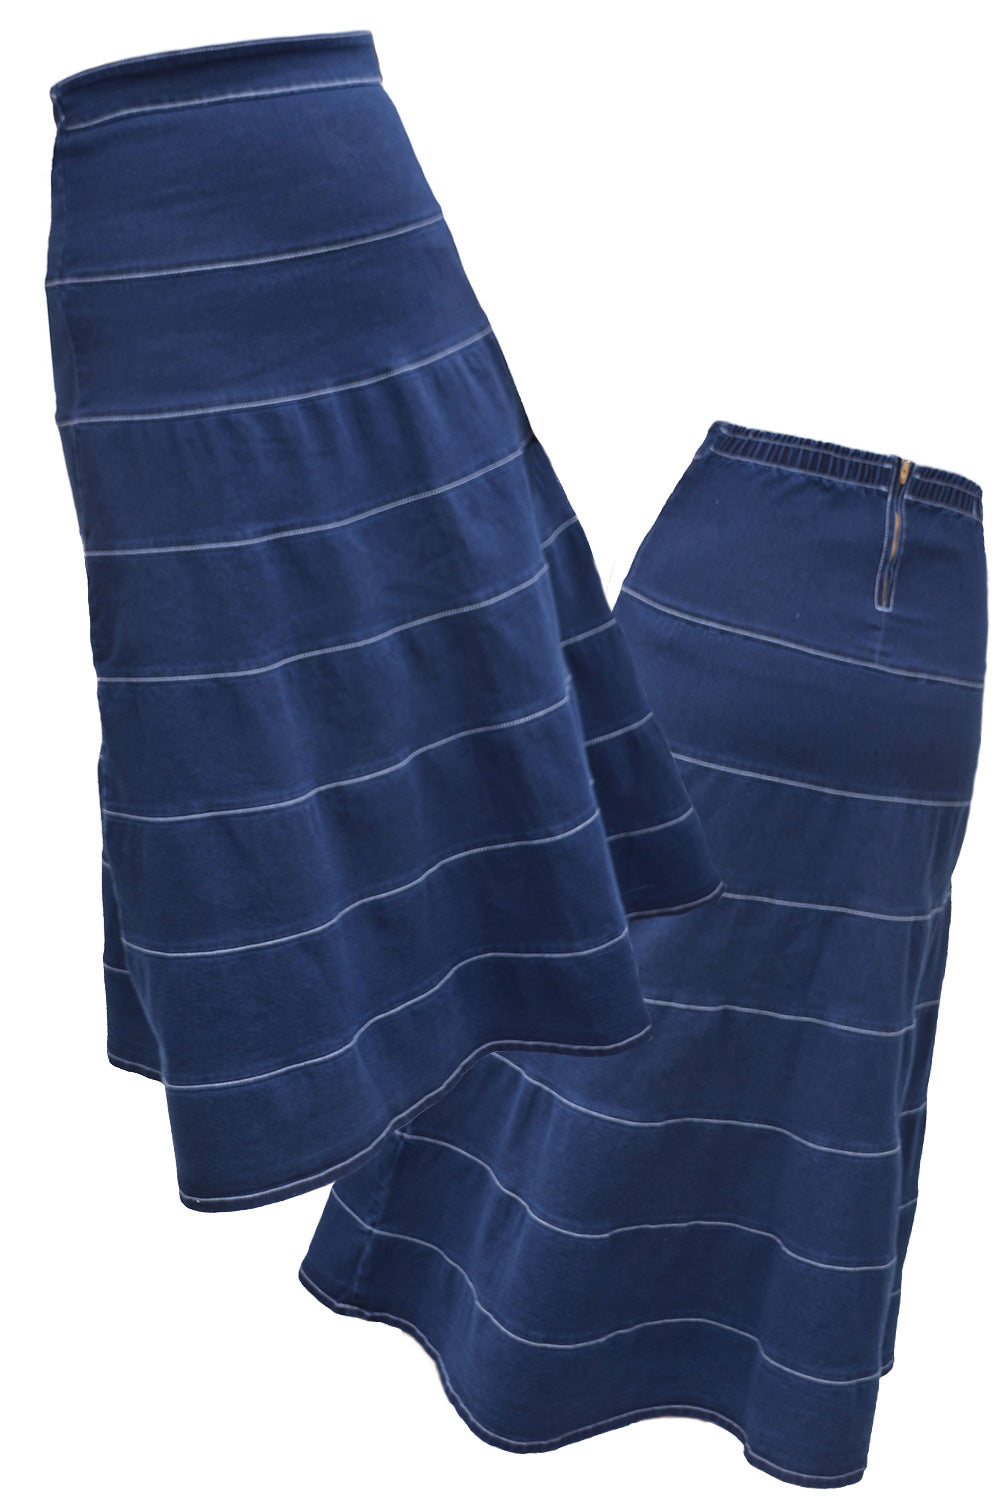 Long Tiered Denim Skirt Style 1487 - The Skirt Boutique